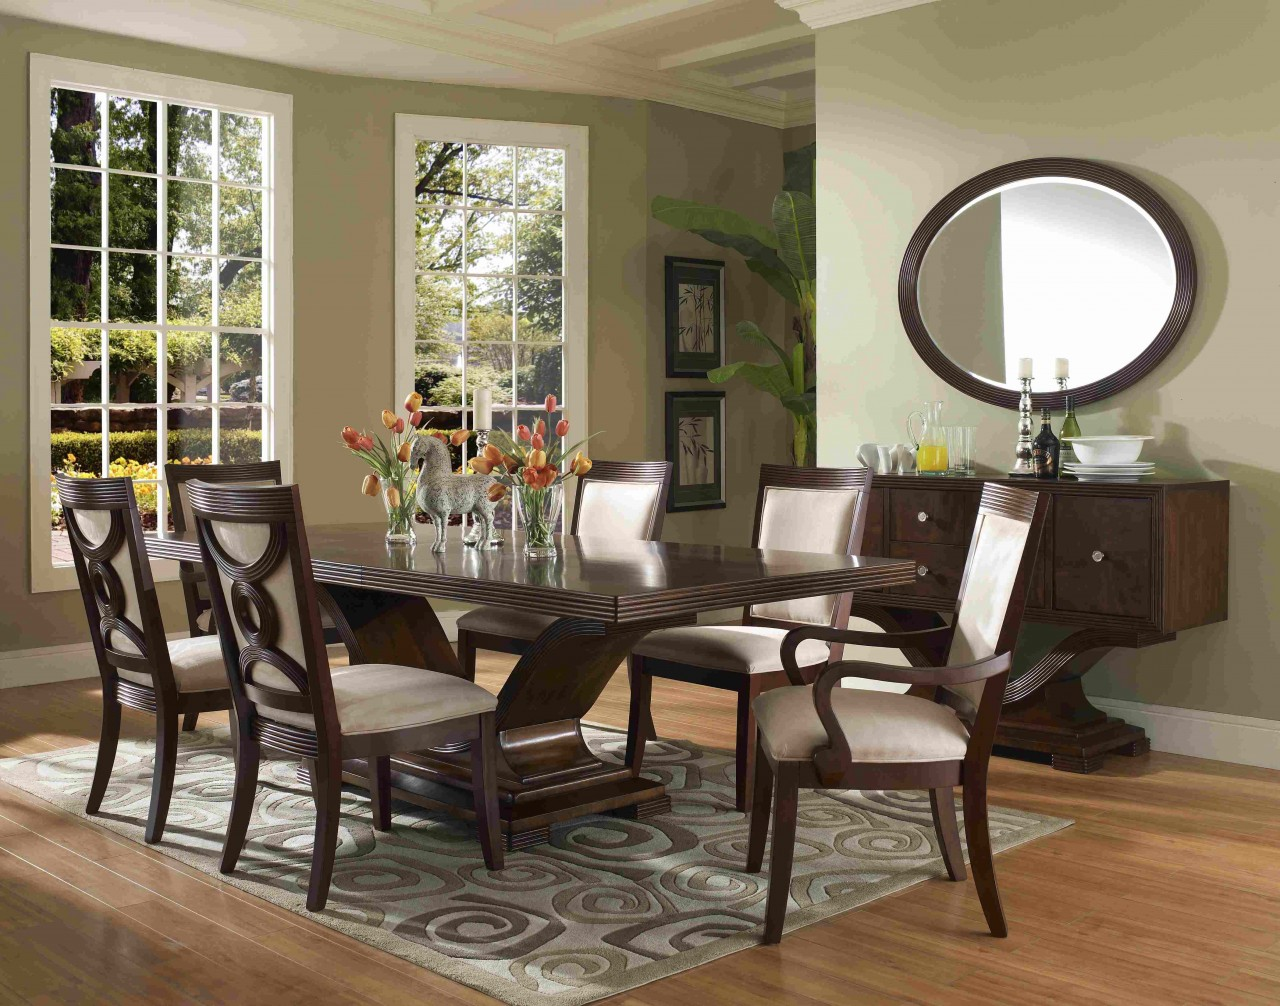 Contemporary Dining Room Furniture Sets perfect formal dining room sets for 8 homesfeed. the formal dining